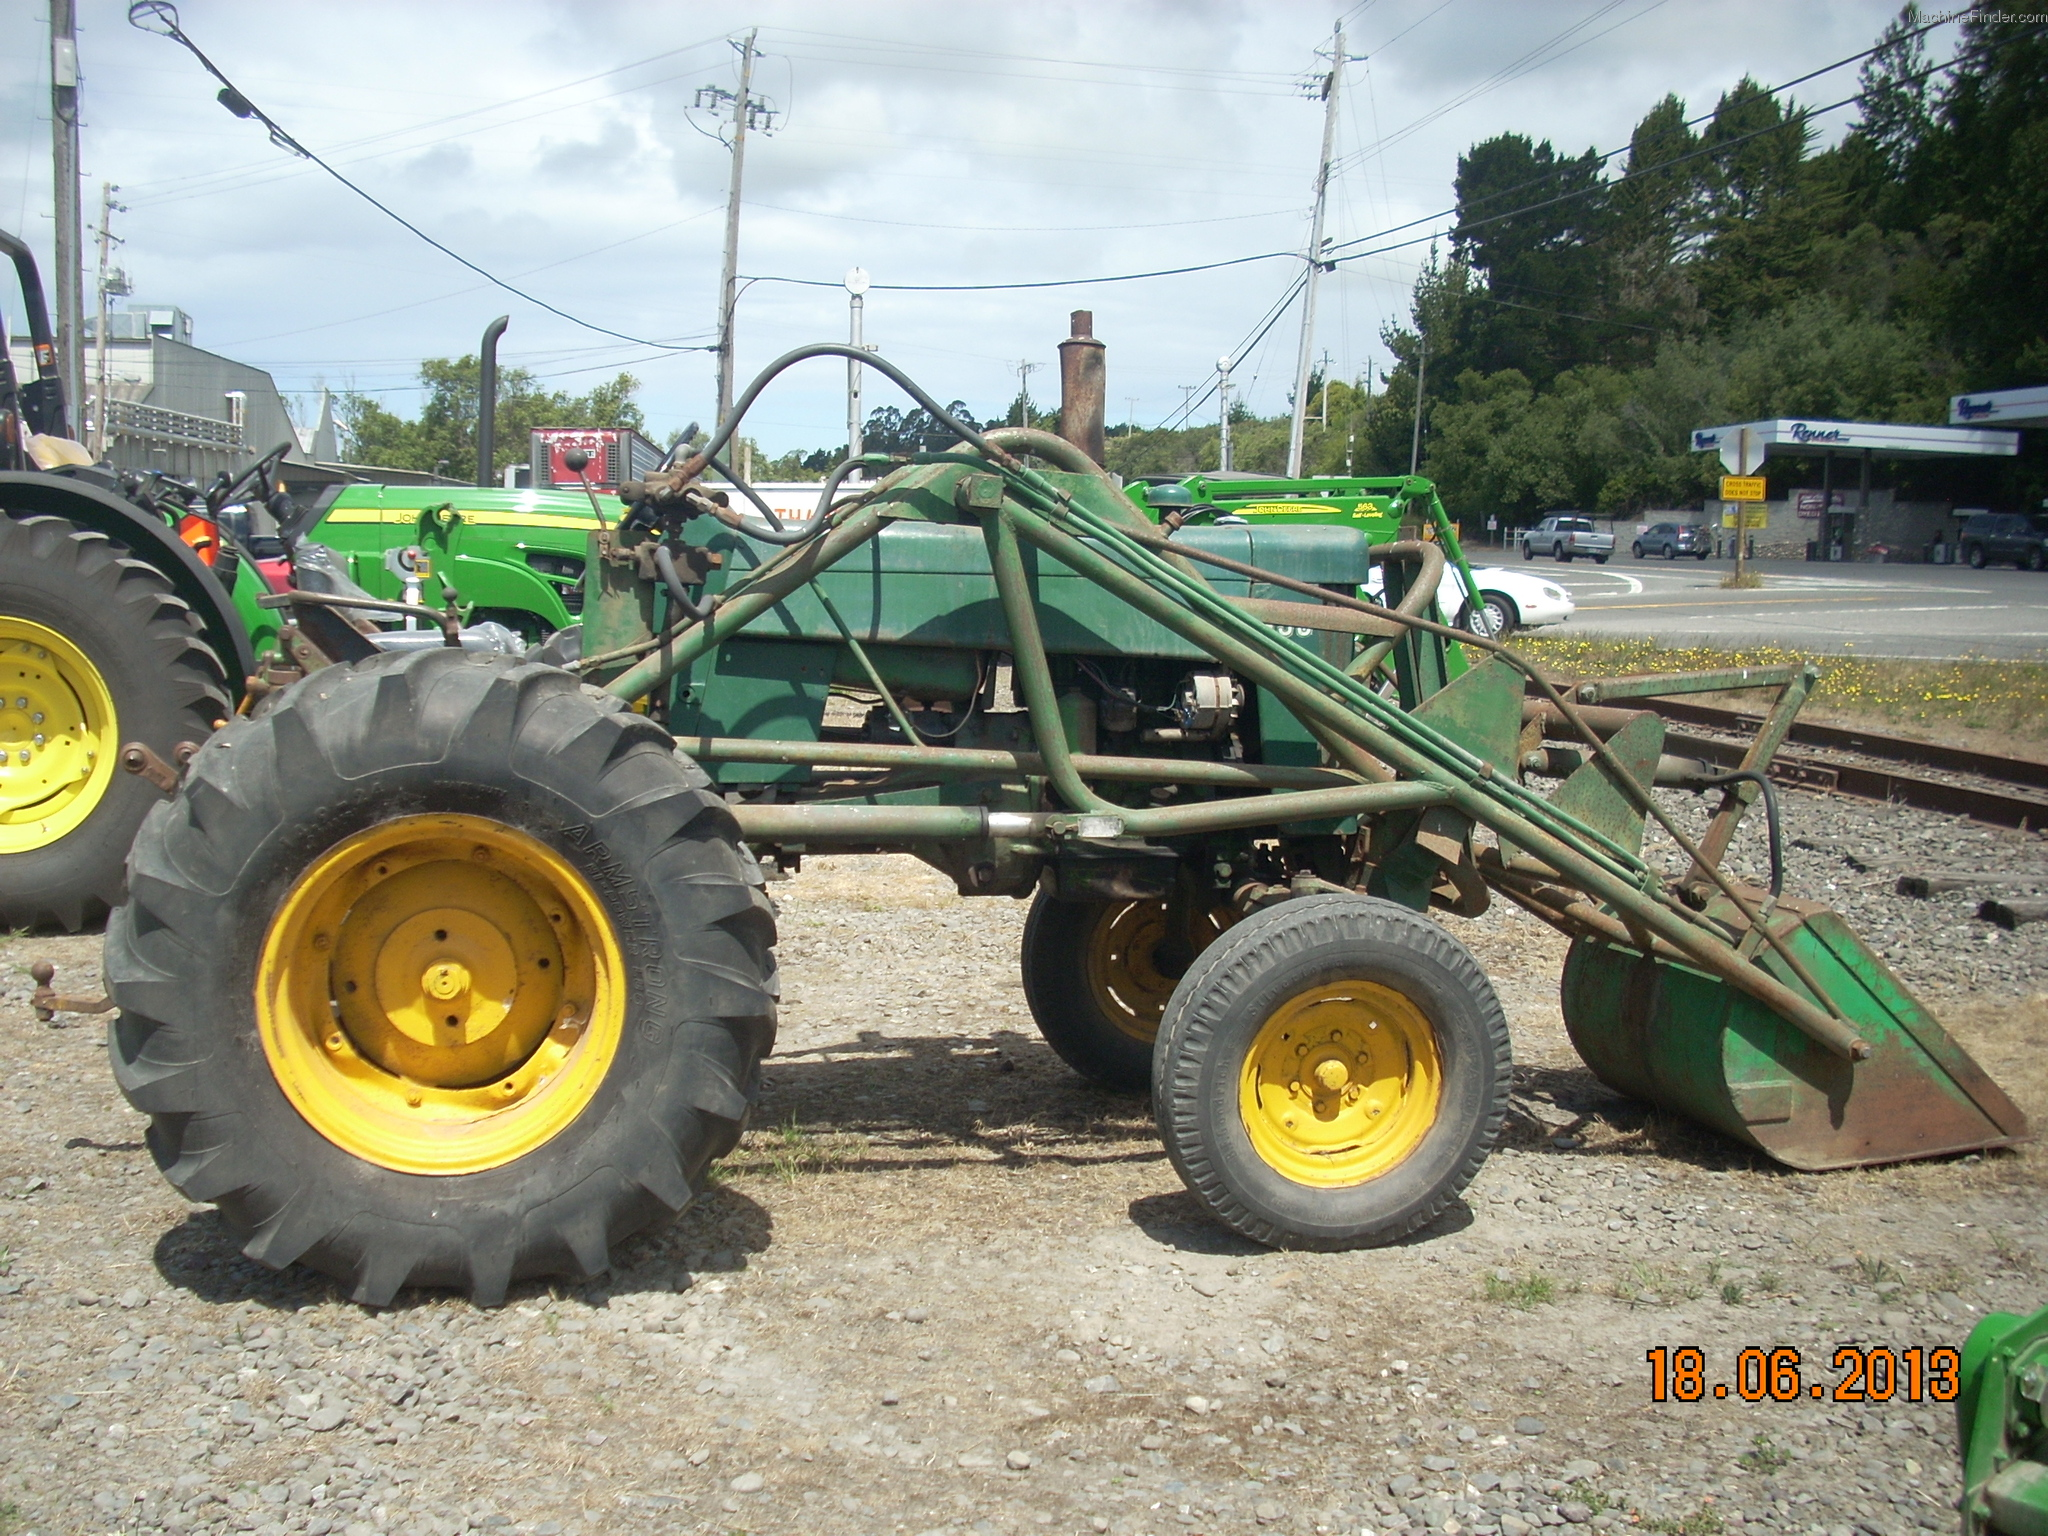 John Deere 430 Tractor Loaders - John Deere MachineFinder